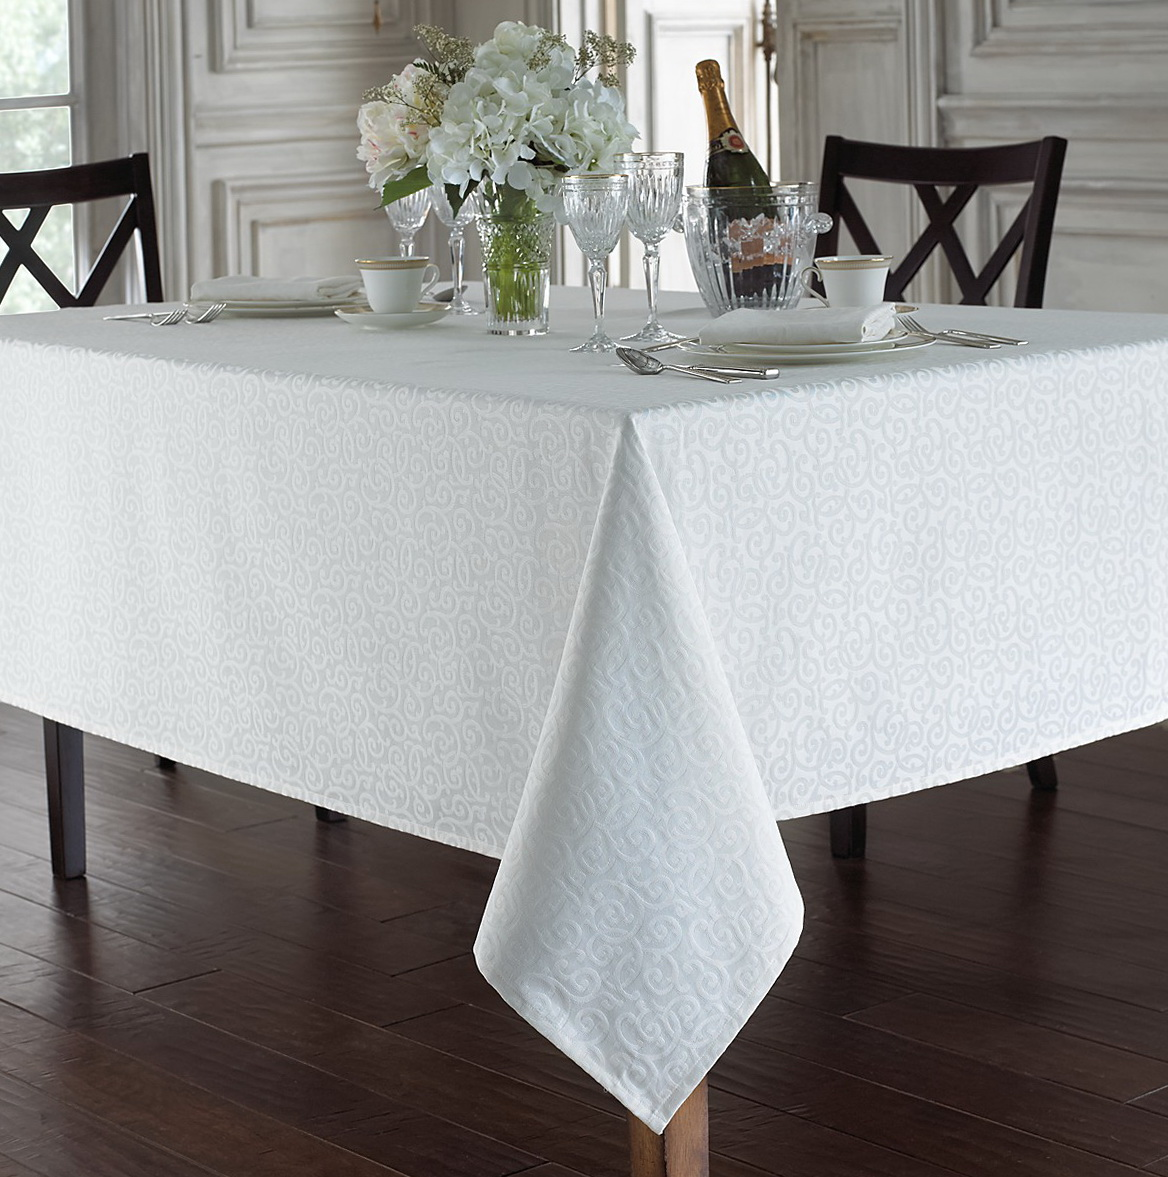 Table Linen Direct Promo Code